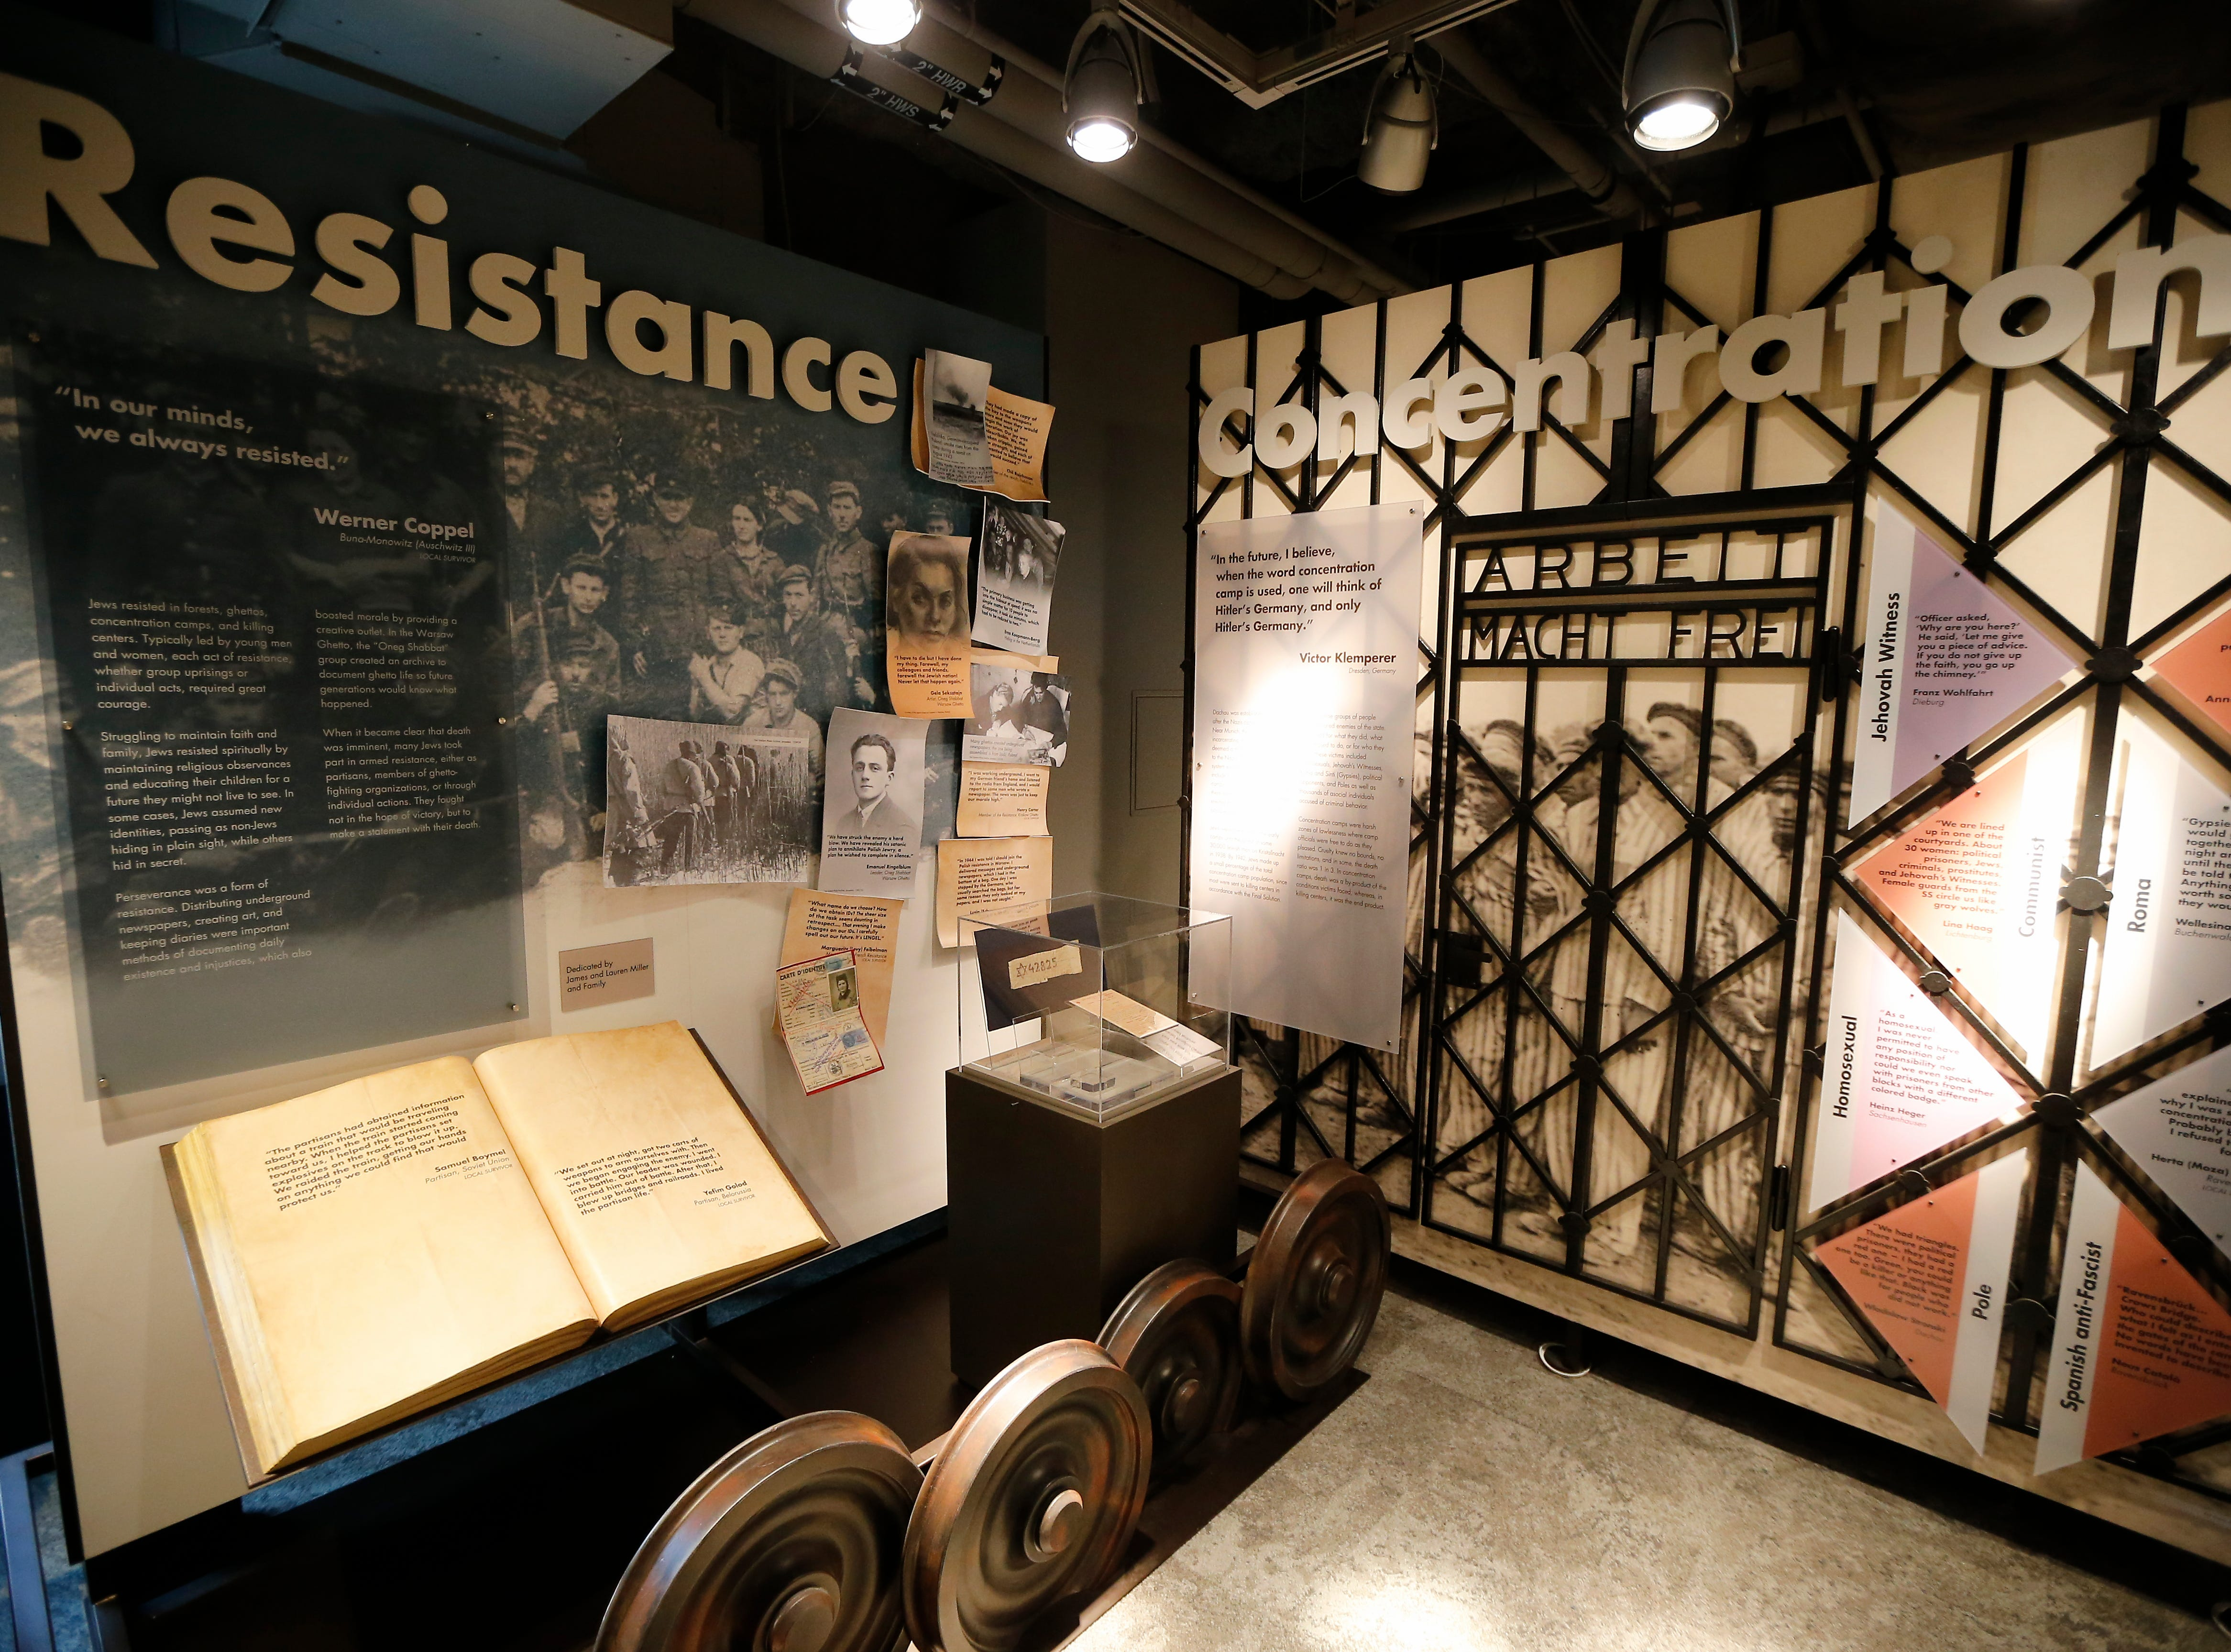 A display showing the time periods during the Holocaust is shown in the new Holocaust and Humanity Center at the Cincinnati Museum Center in the Queensgate neighborhood of Cincinnati on Tuesday, Jan. 22, 2019. The new exhibit covering the events before, during and after the Holocaust will be open to the public Jan. 27.